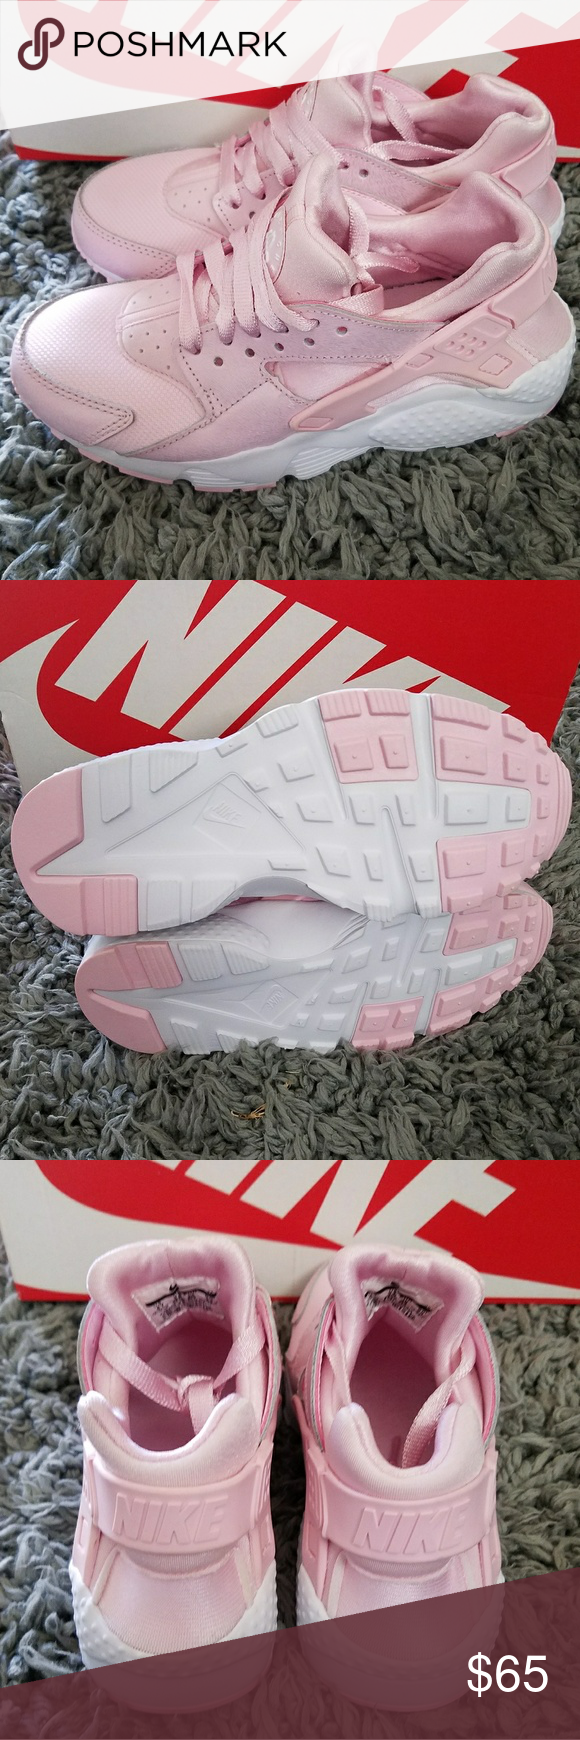 27699eb05d2d NIKE HUARACHE RUN SE PINK PRISM Sz 4Y NEW WITH BOX color PRISM PINK WHITE